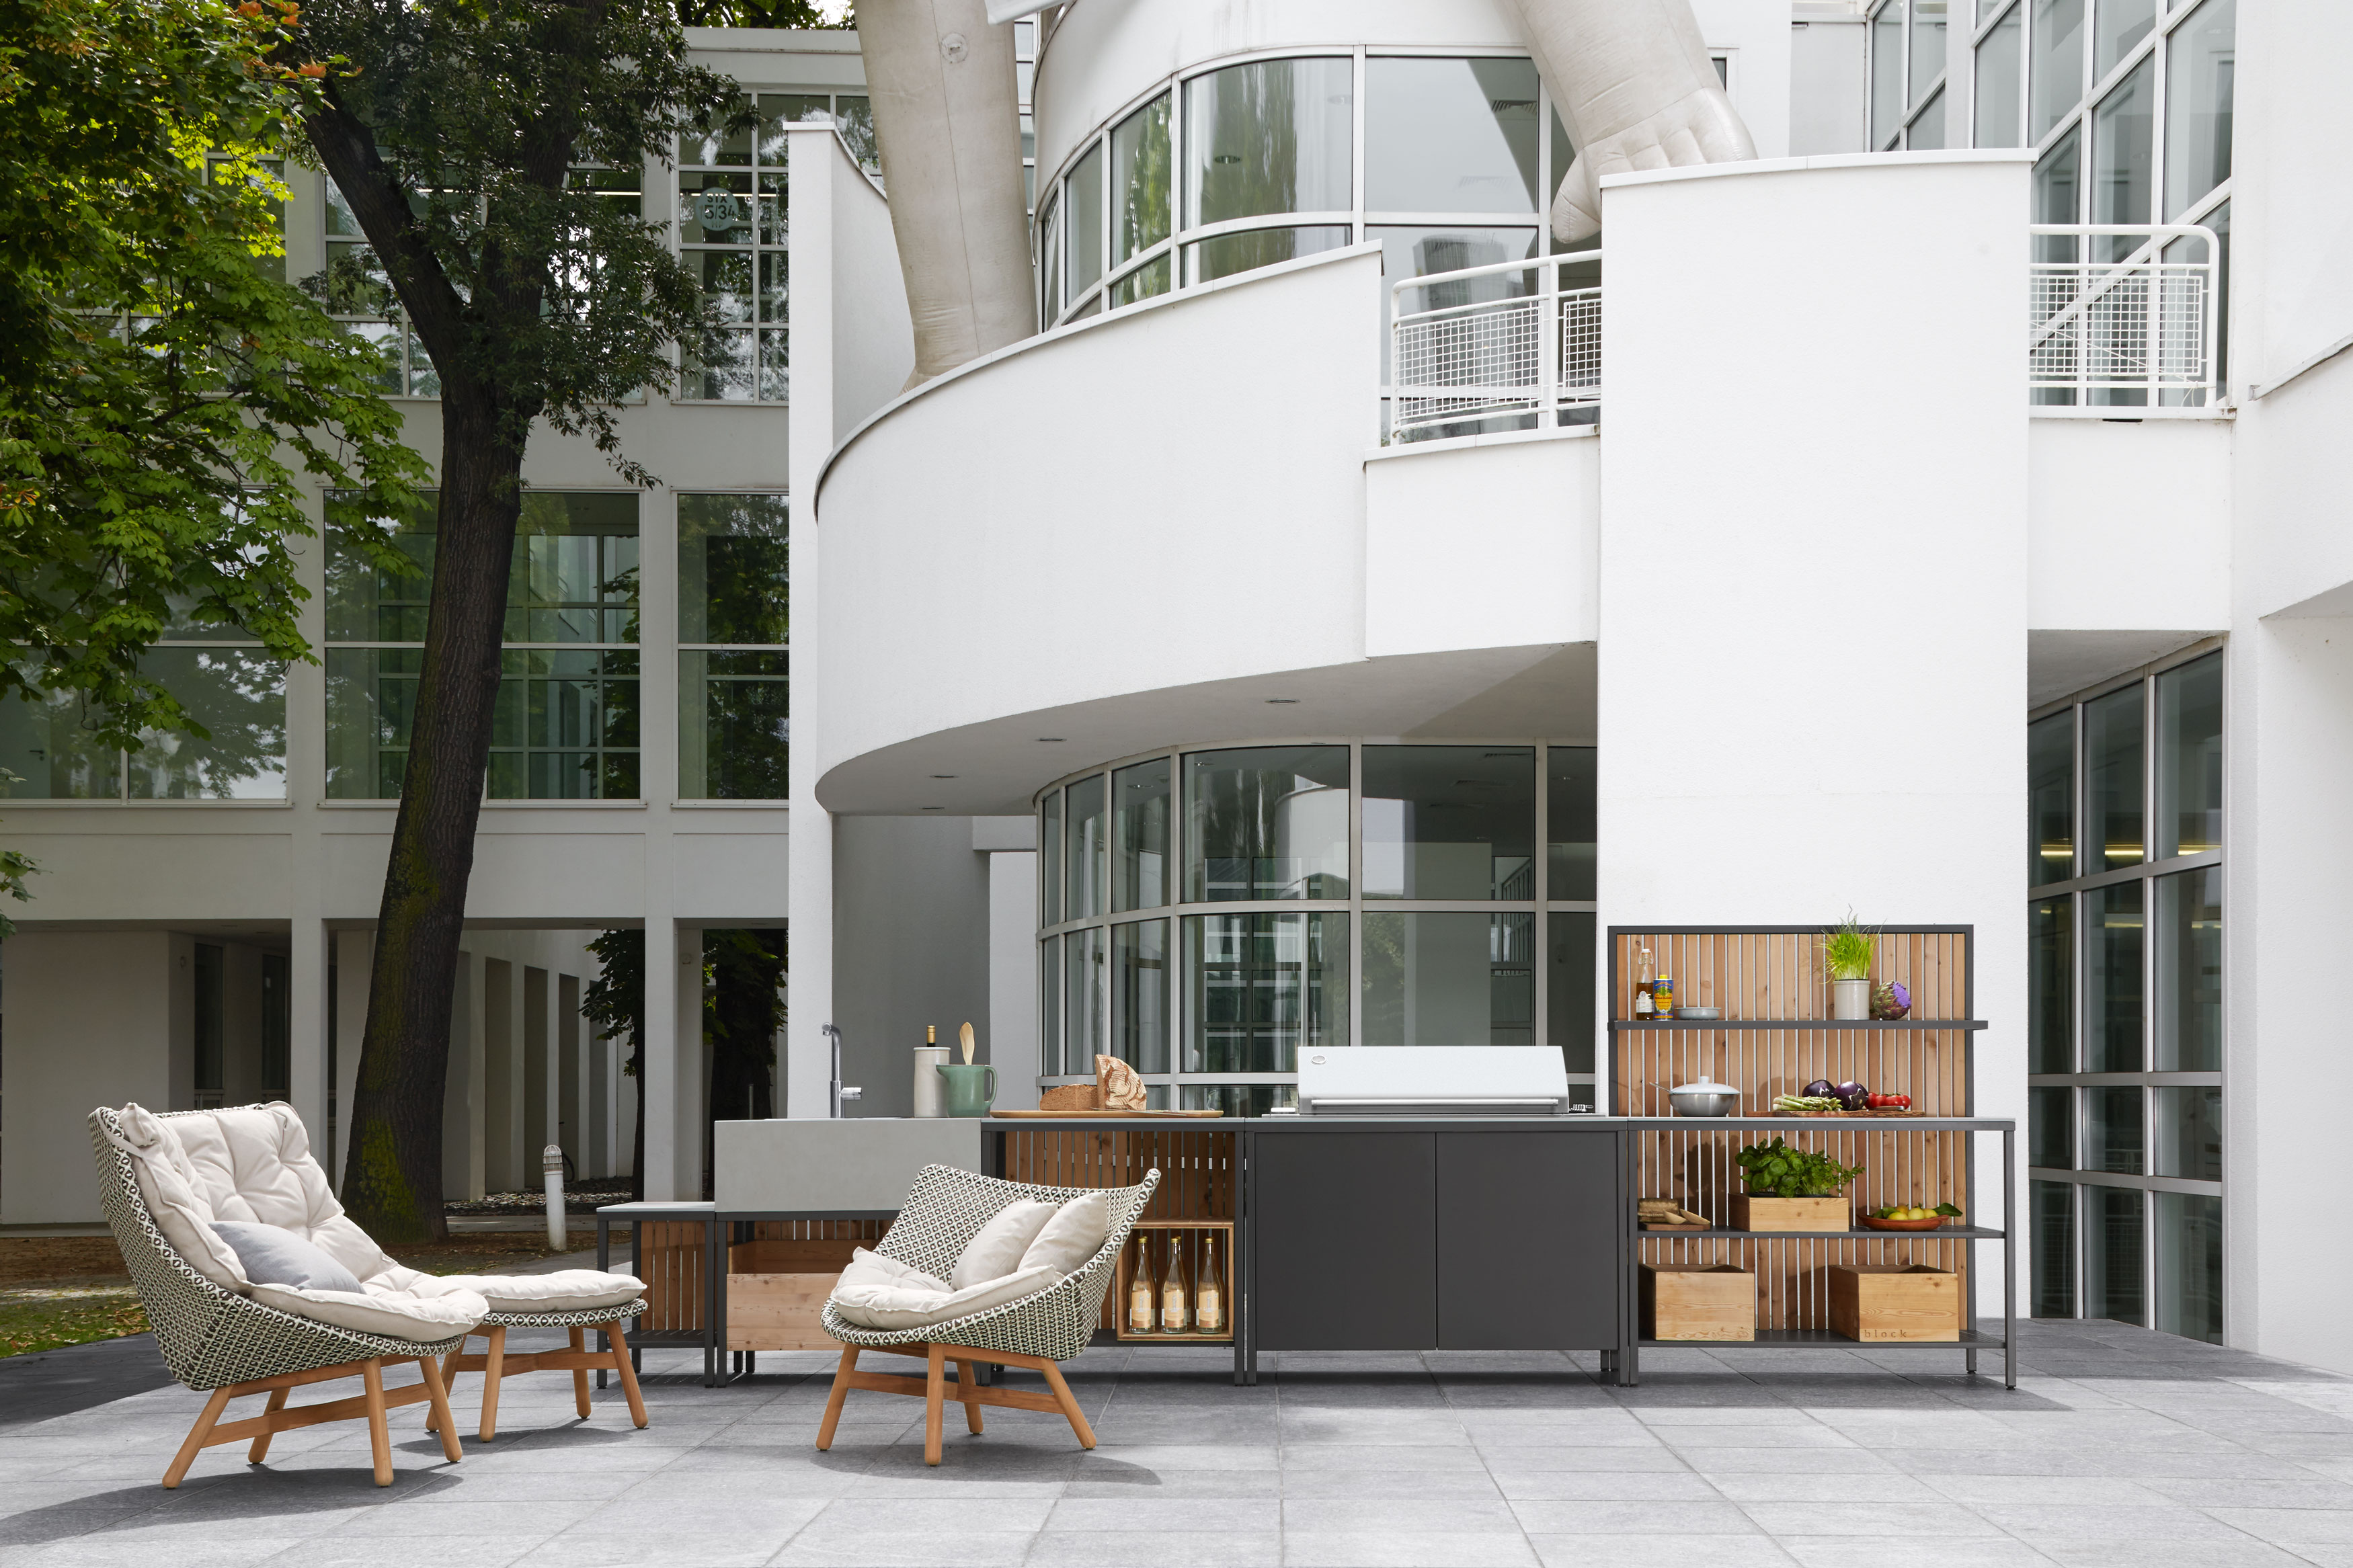 block outdoor kitchen behind dedon chairs